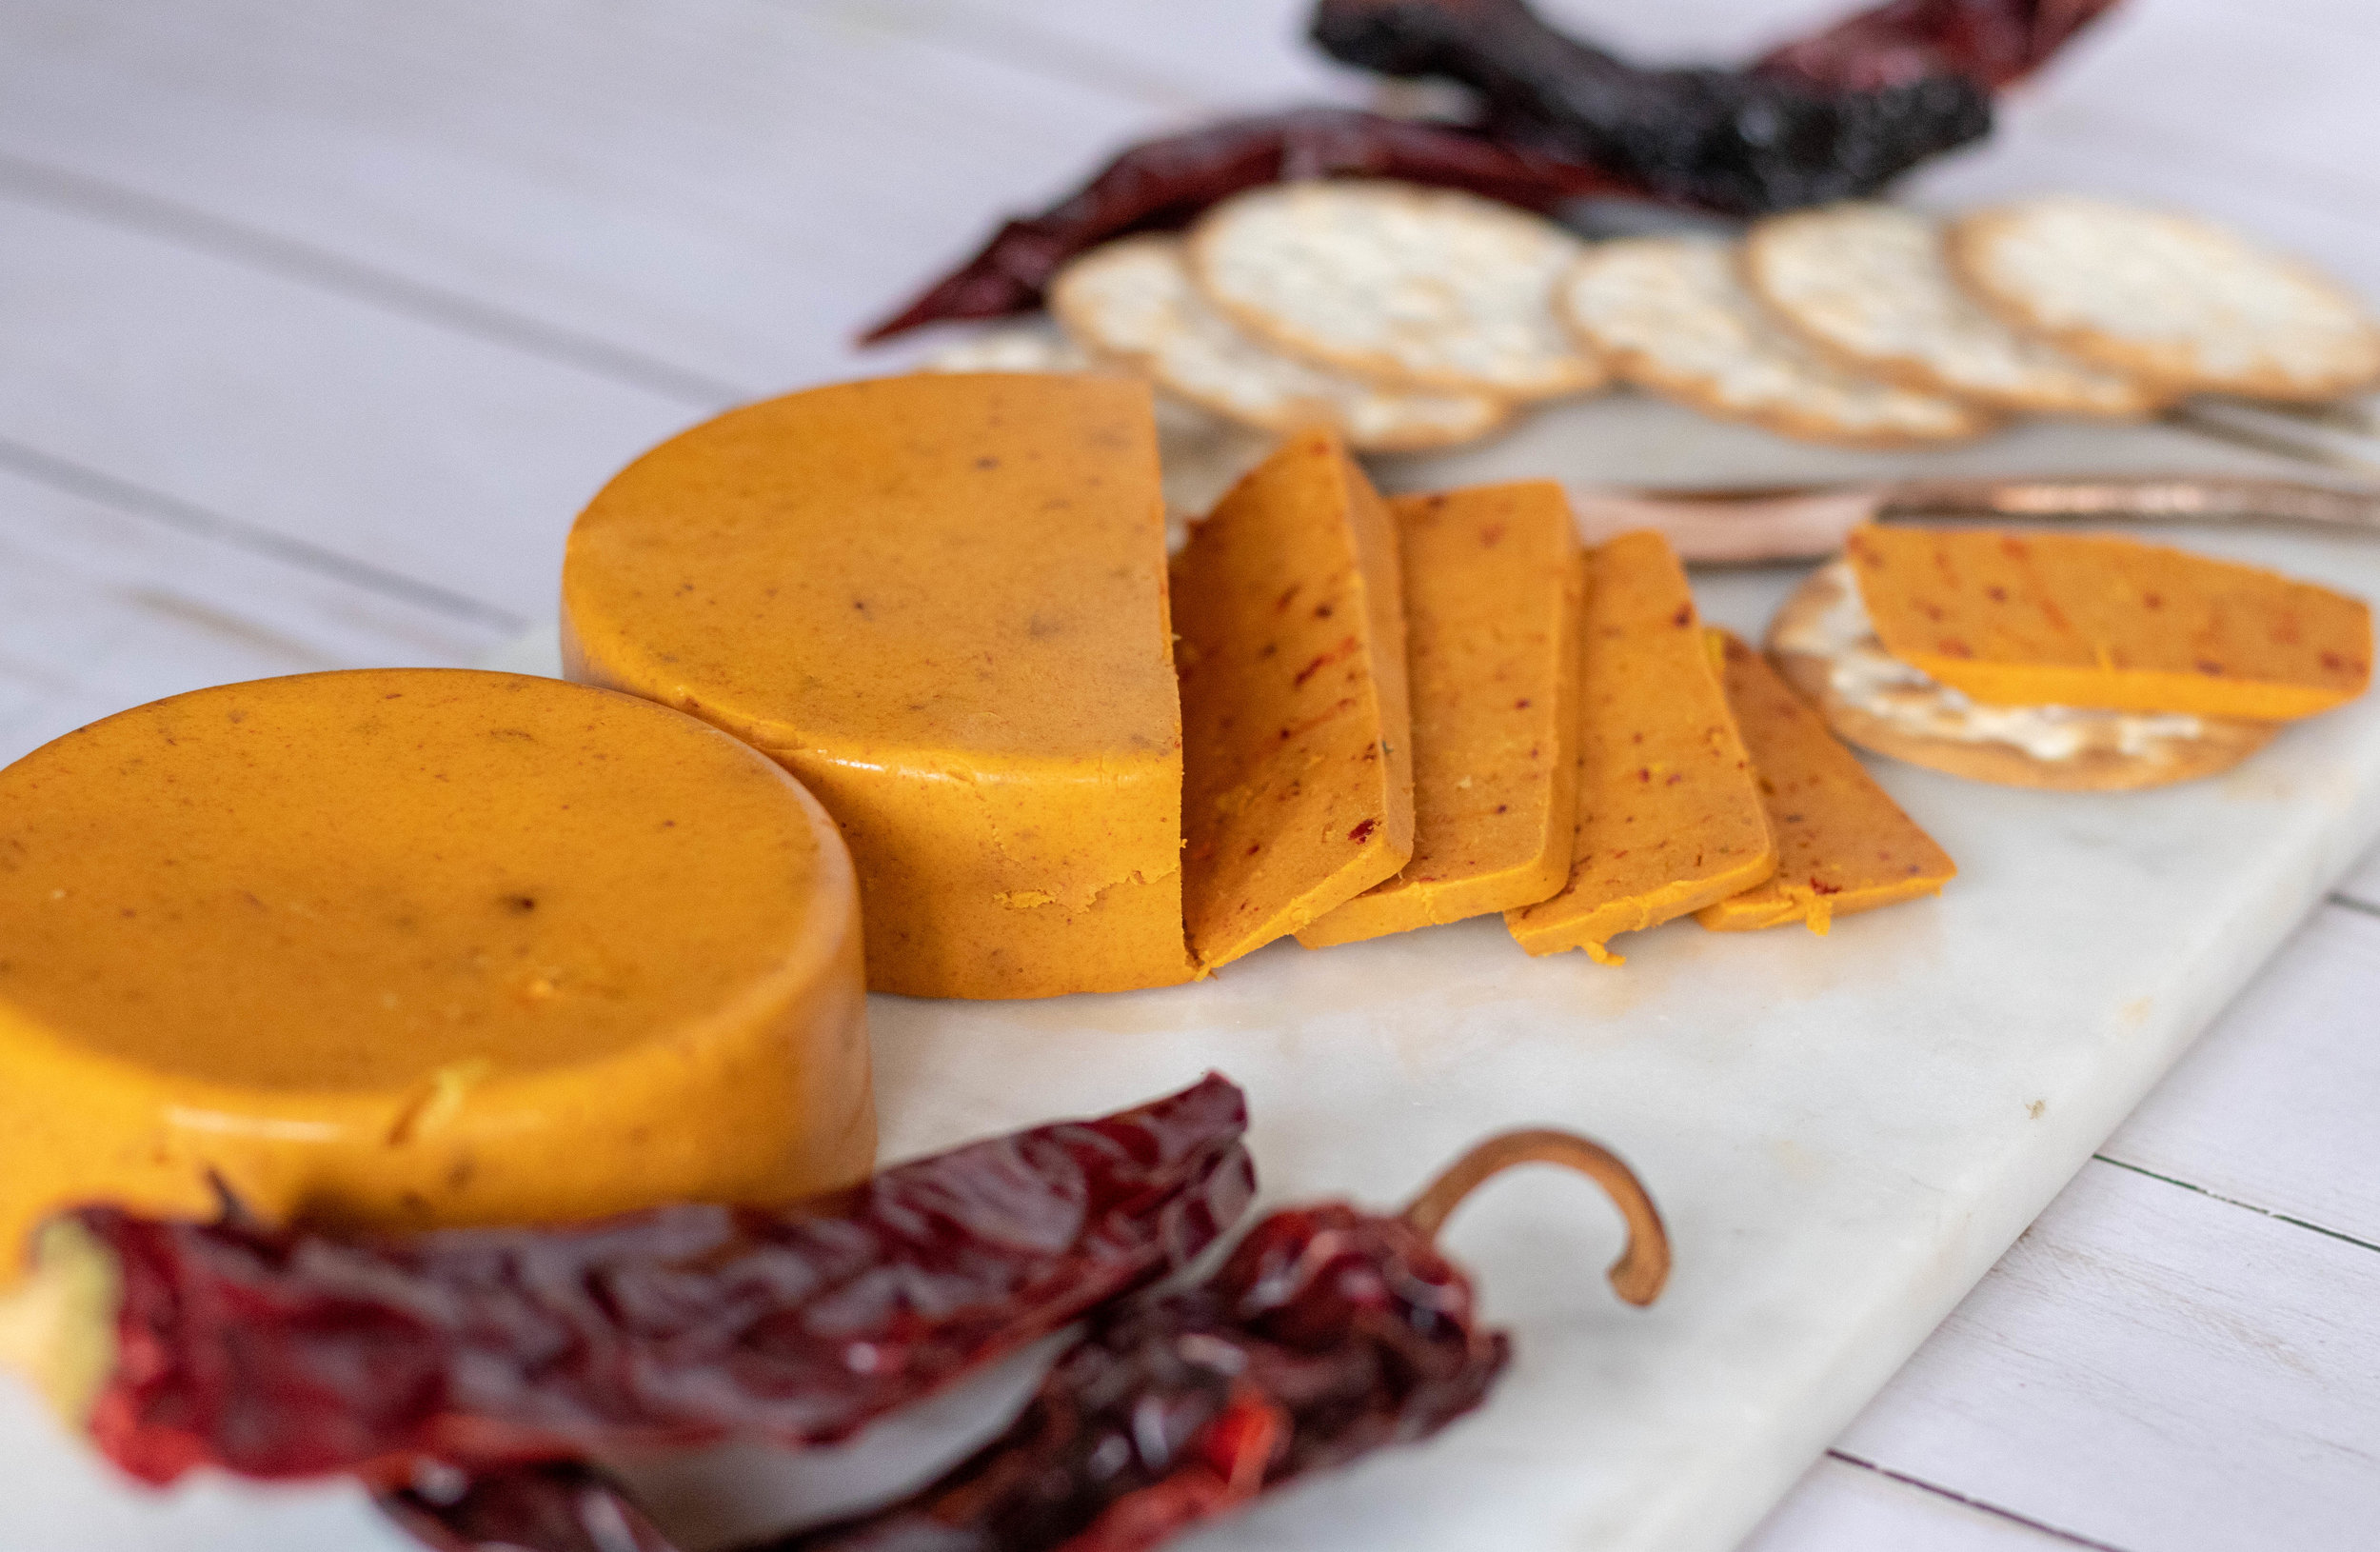 Vegan Smokey Chile Cheddar Cheese sliced